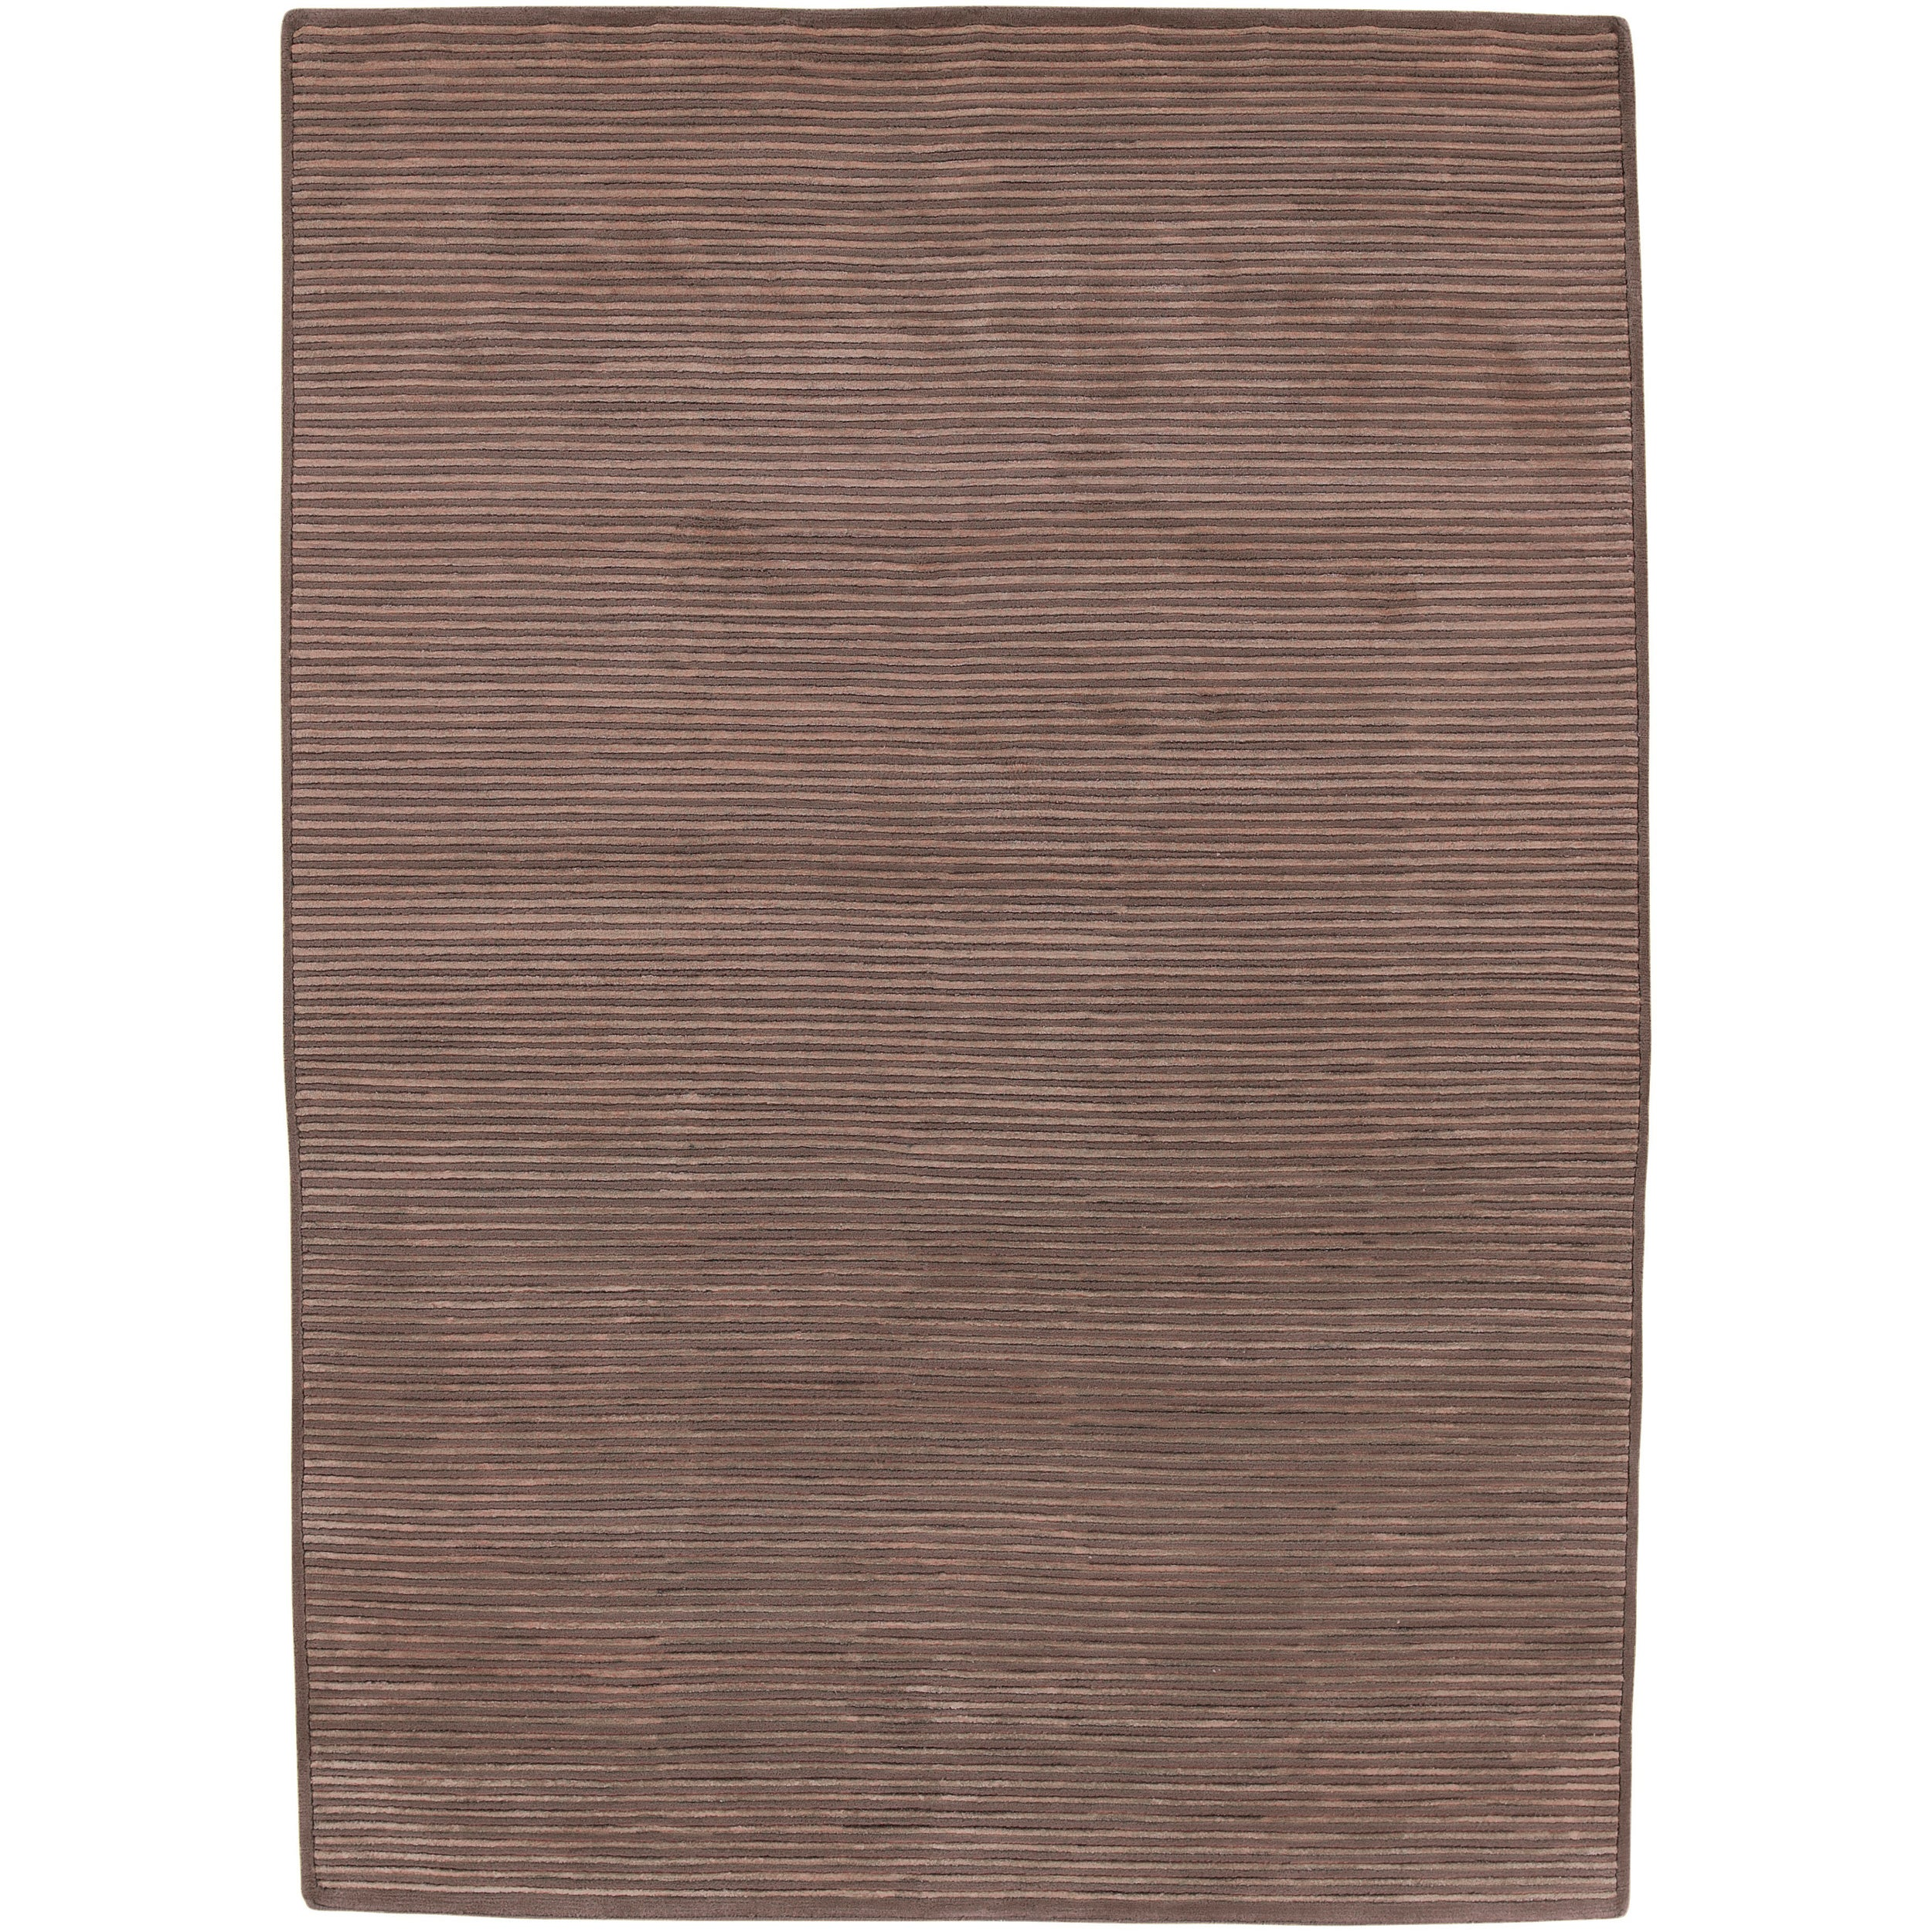 Hand-knotted Solid Brown Casual Chesham Semi-Worsted Wool Area Rug (8' x 11')